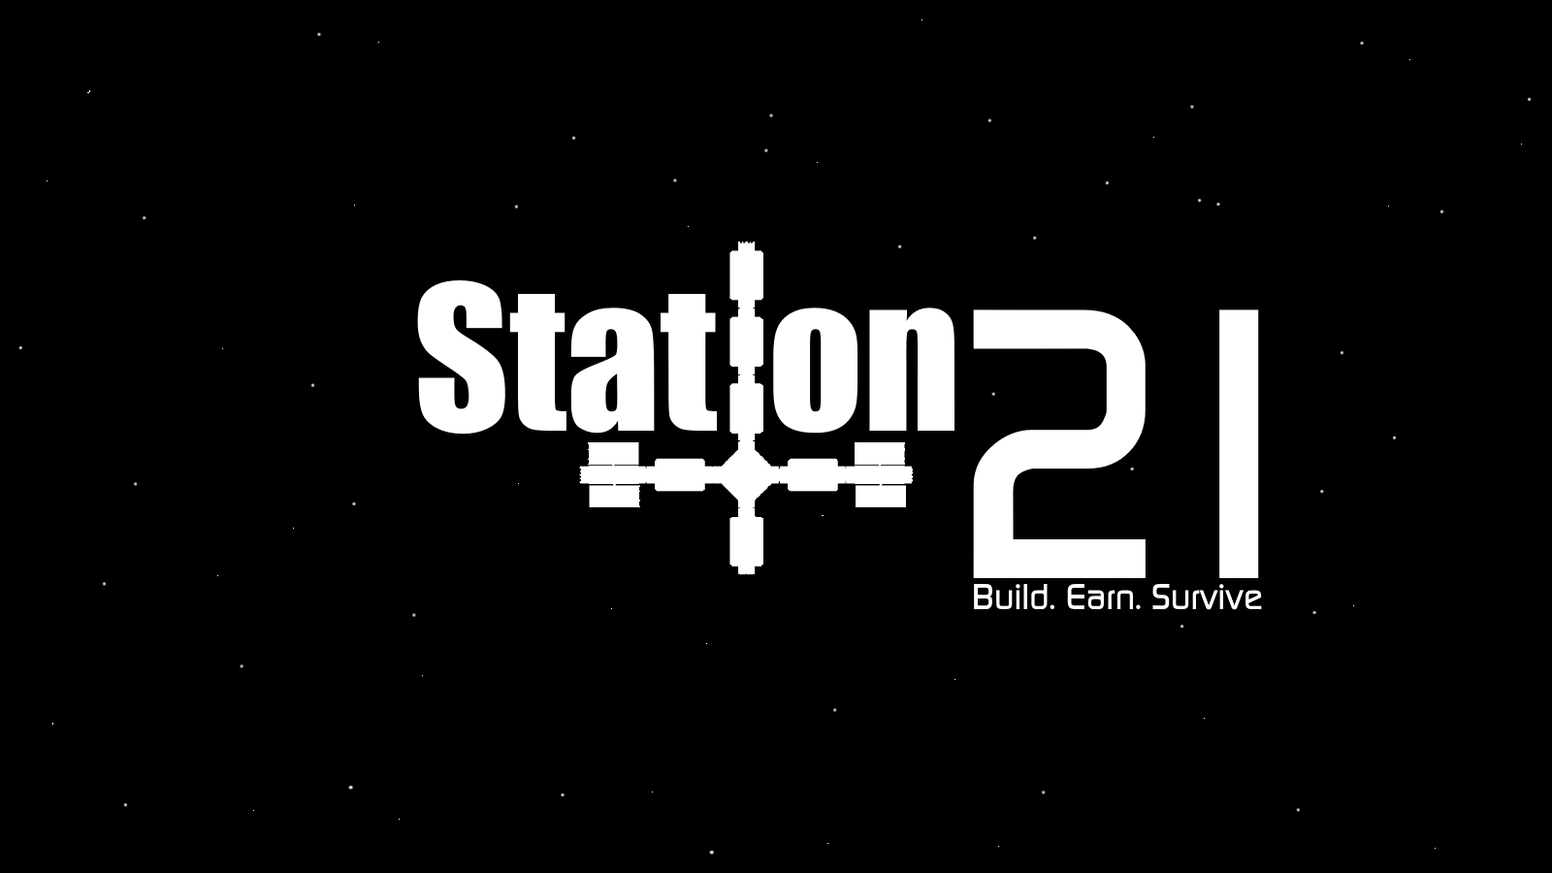 Station Eleven Quotes With Page Numbers: Space Station Manager [PC/MAC/LINUX] By